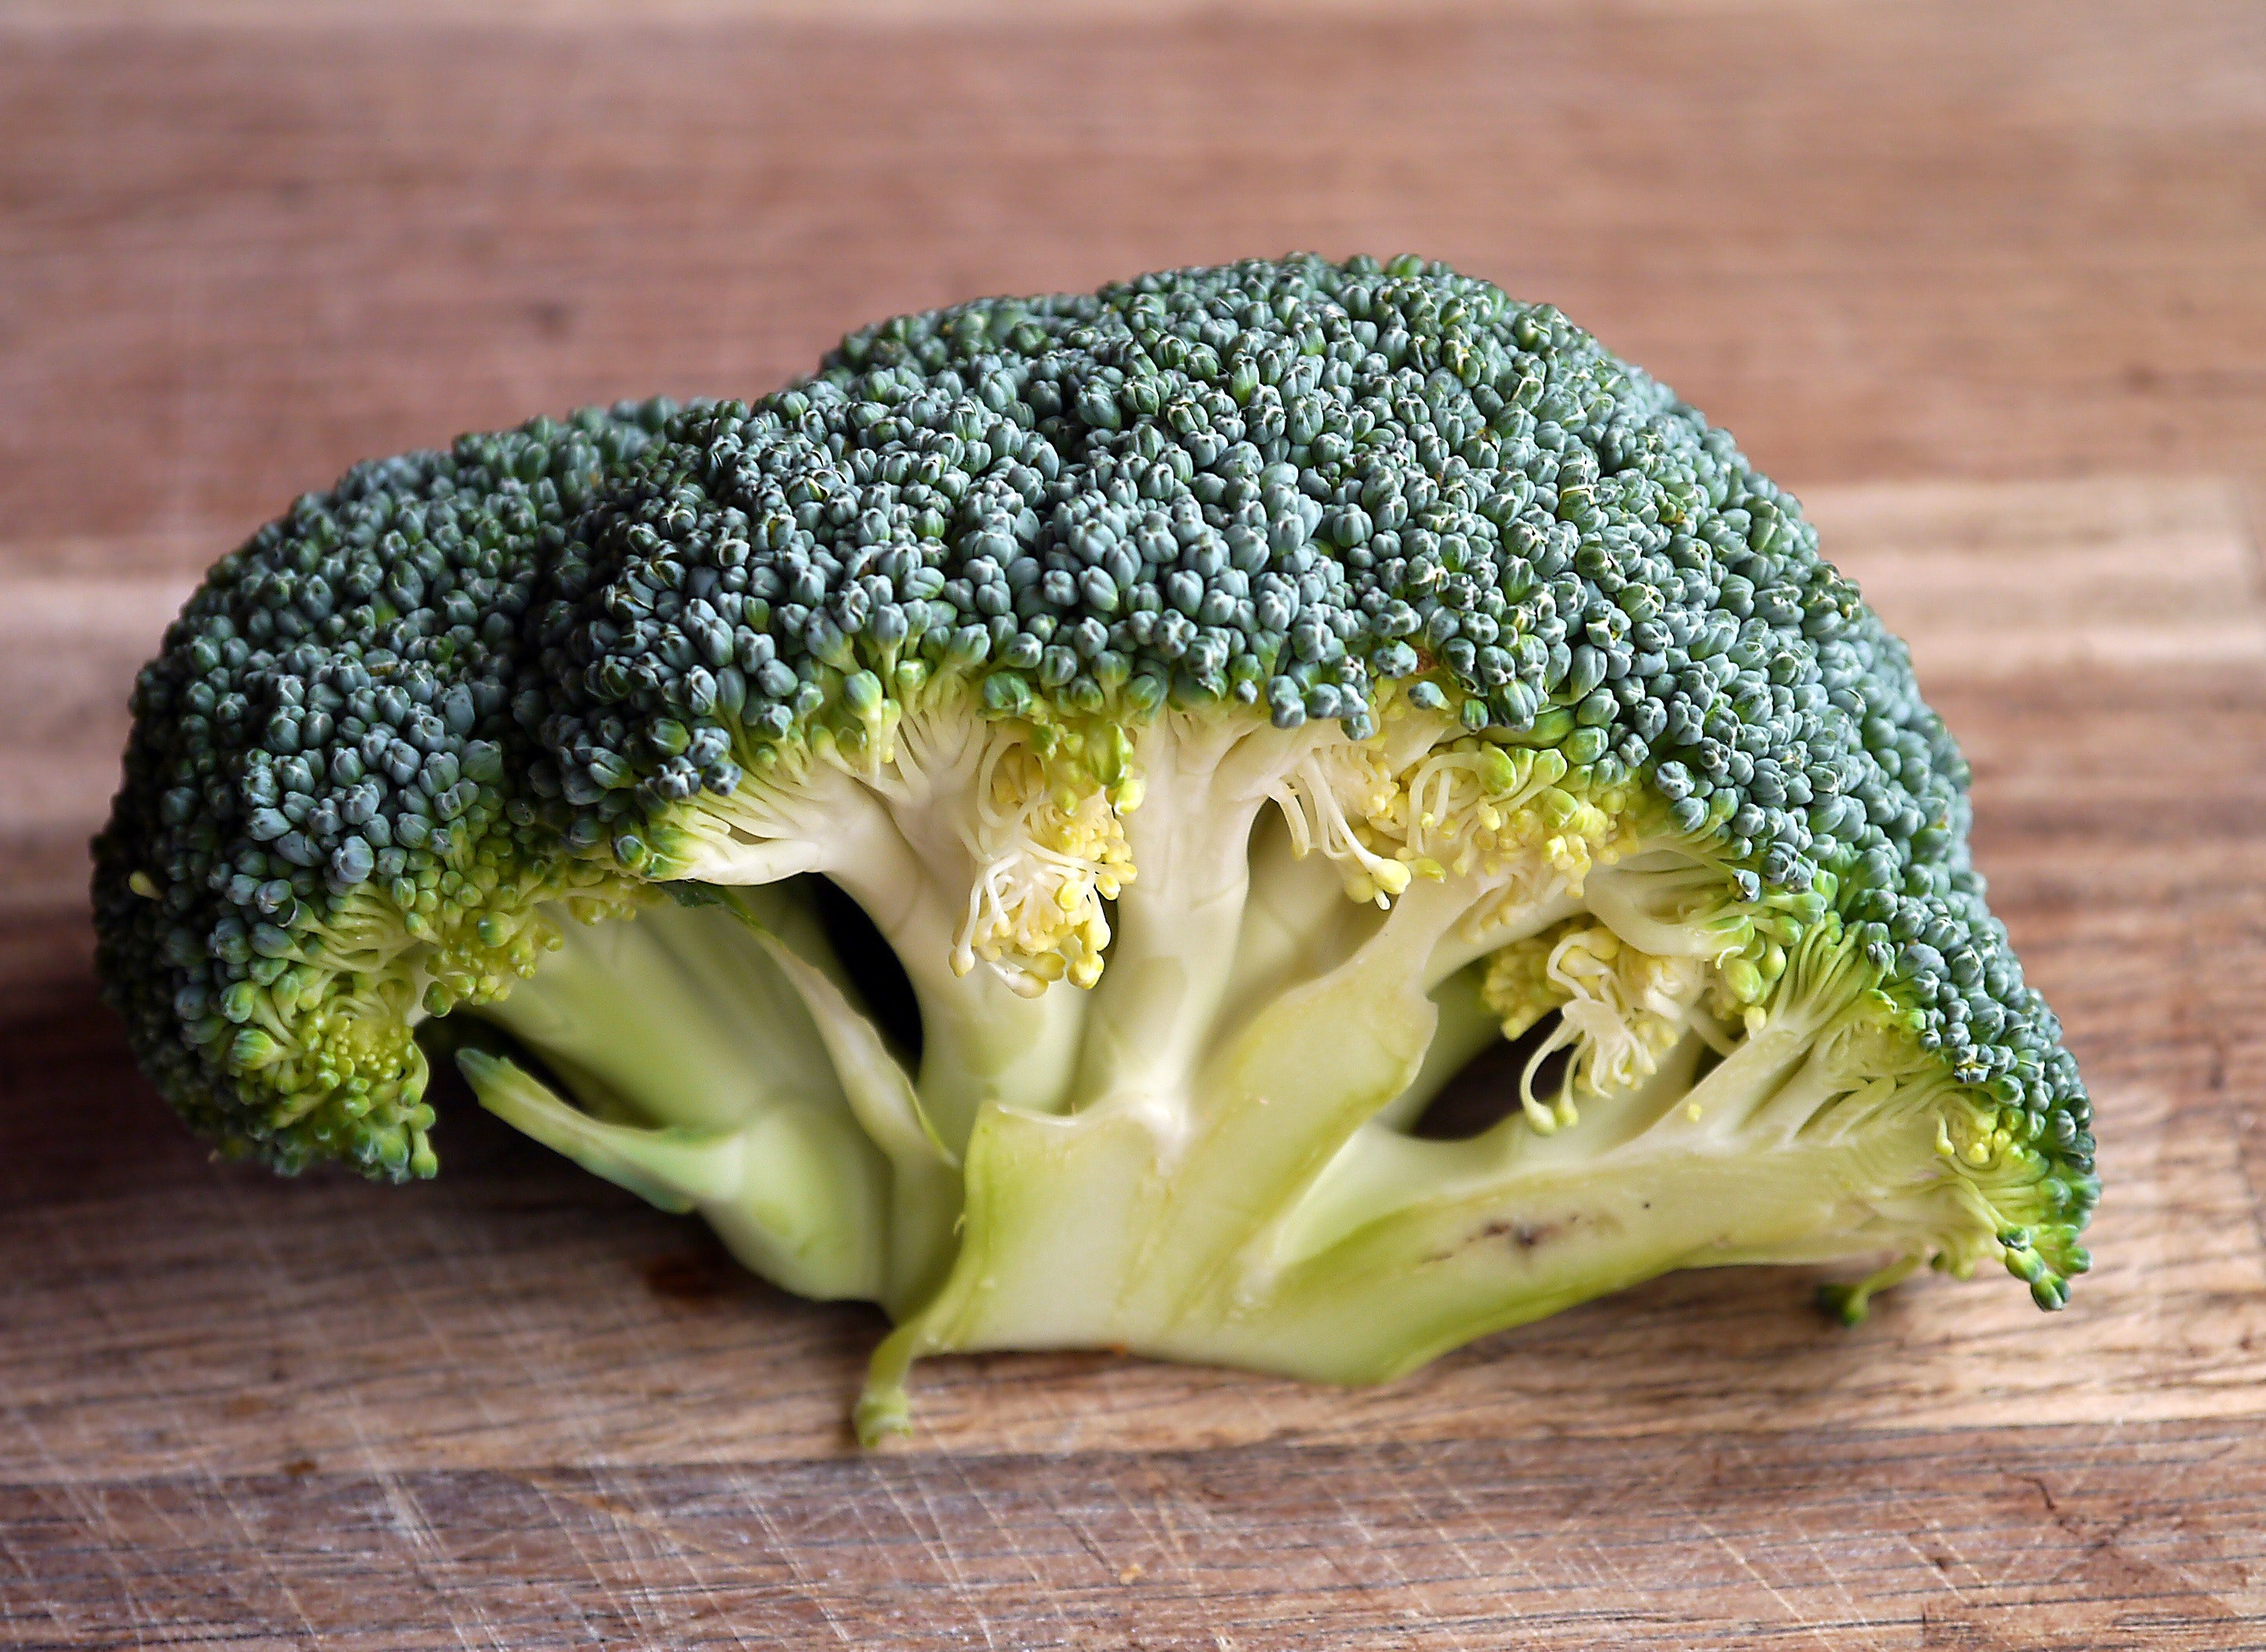 broccoli-food-fresh-47347